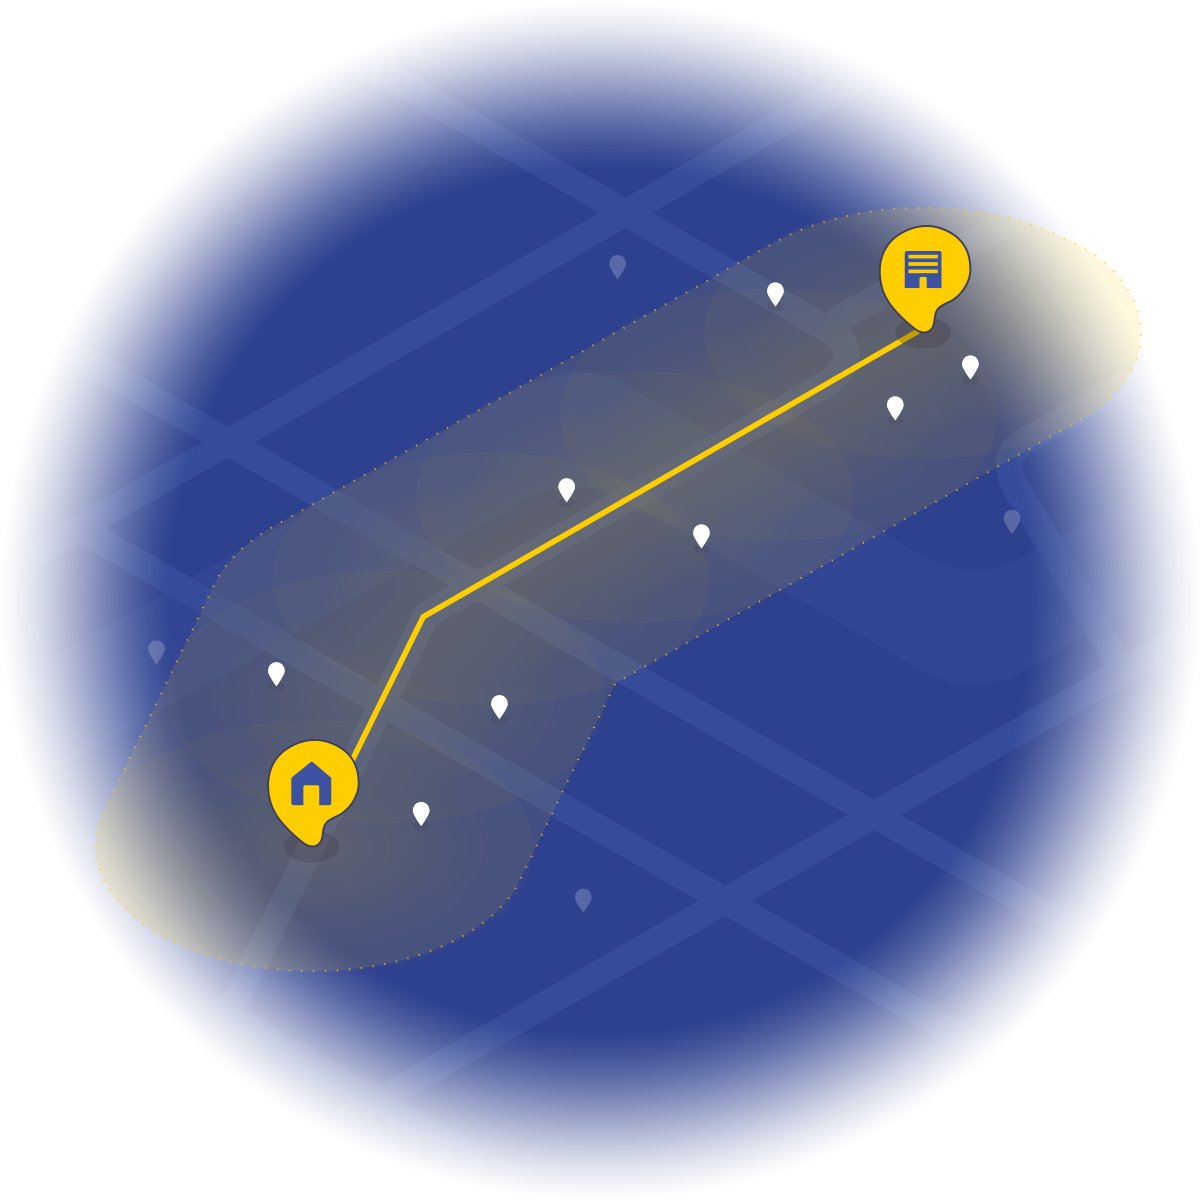 Search algorithm for nearby boarding riders within the driving route